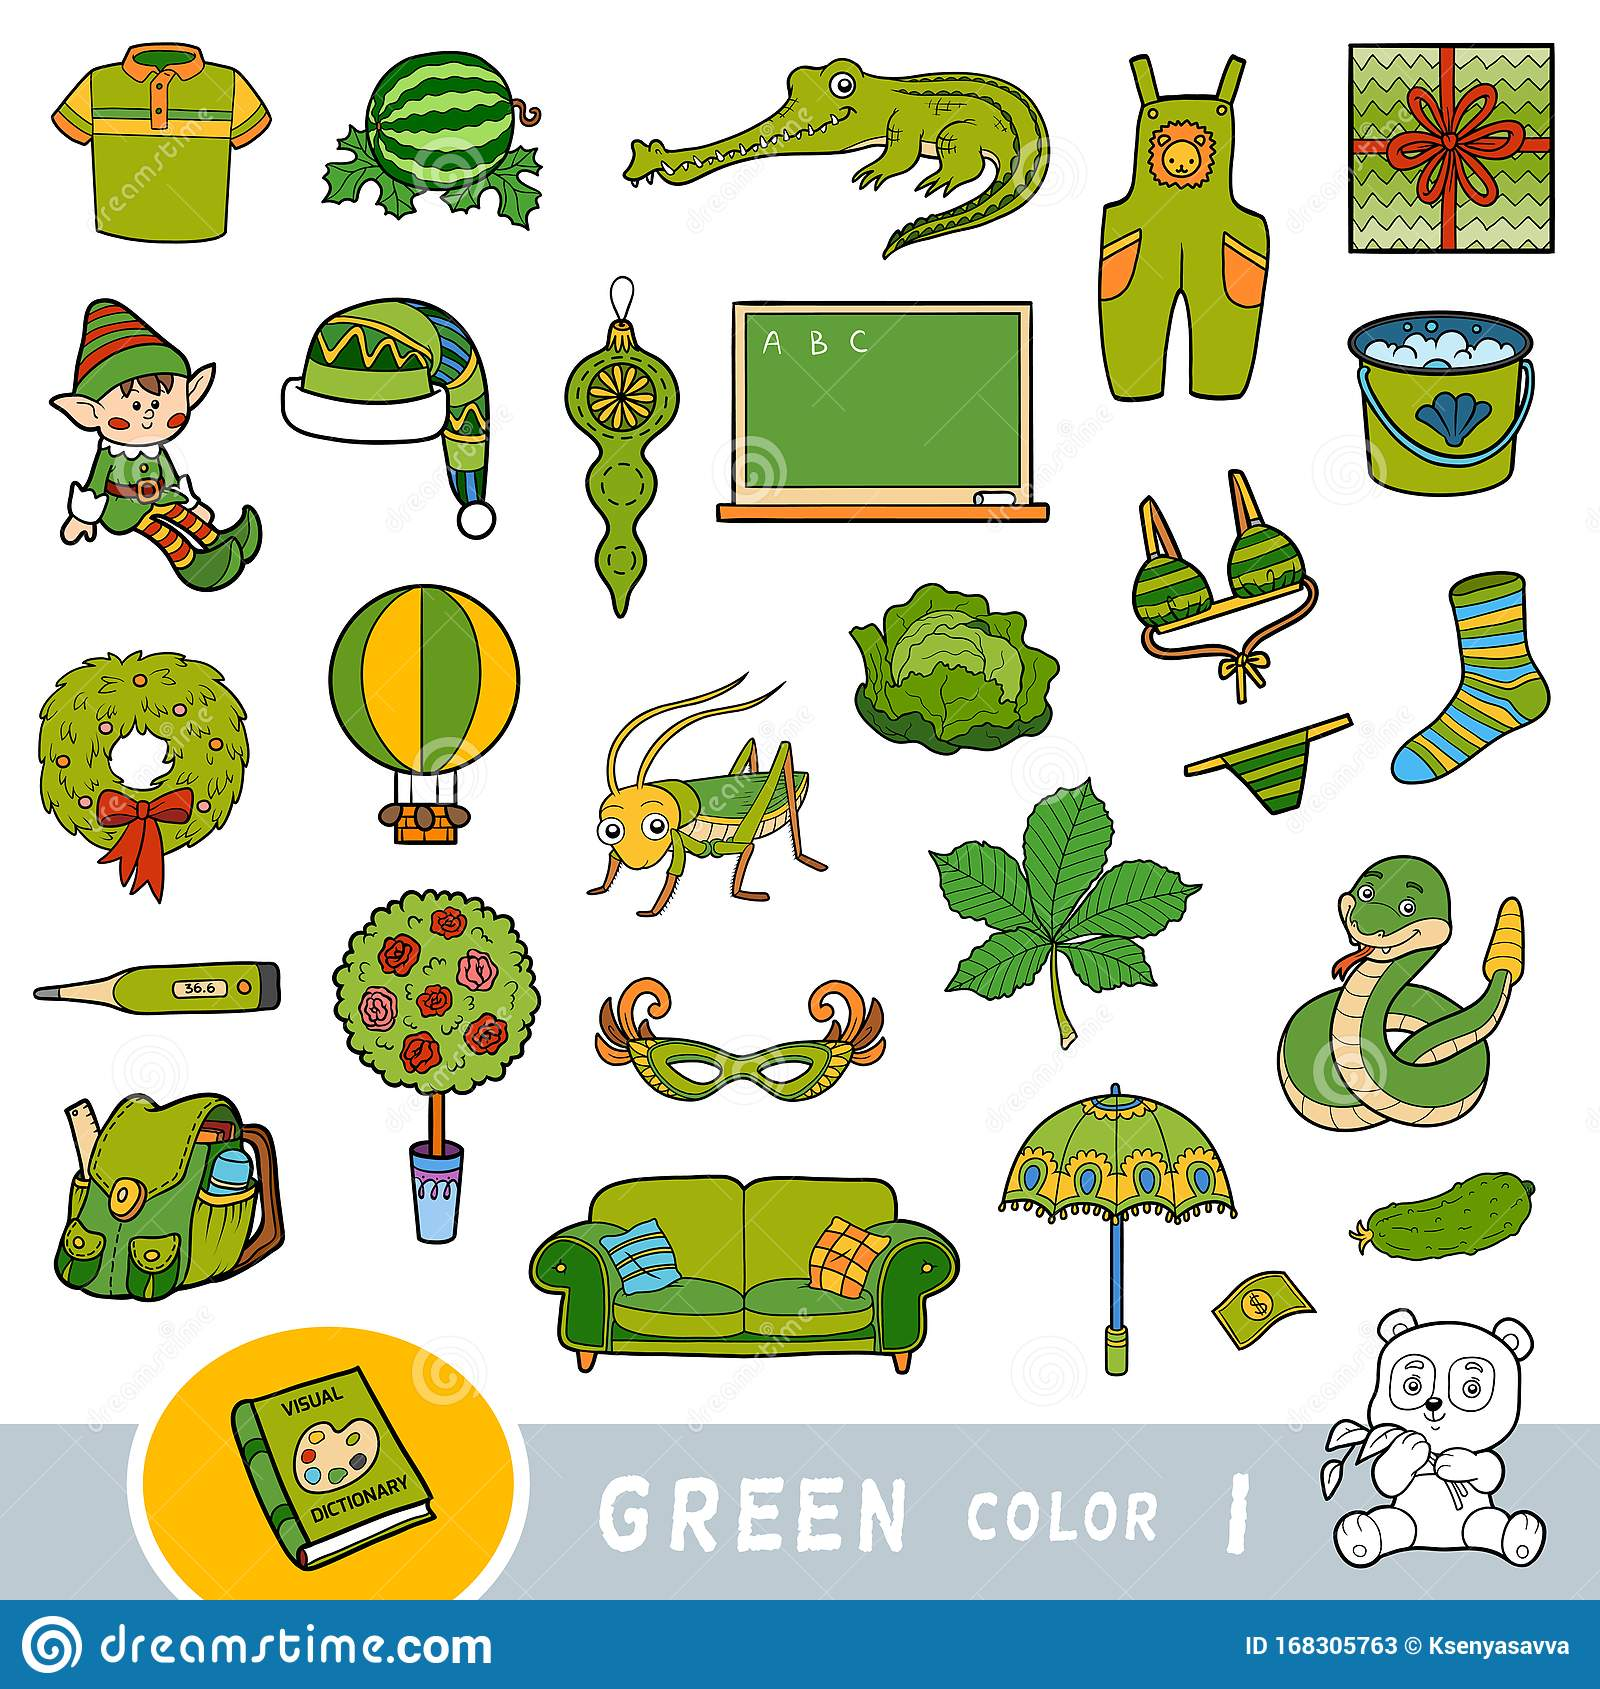 Colorful Set Of Green Color Objects Visual Dictionary For